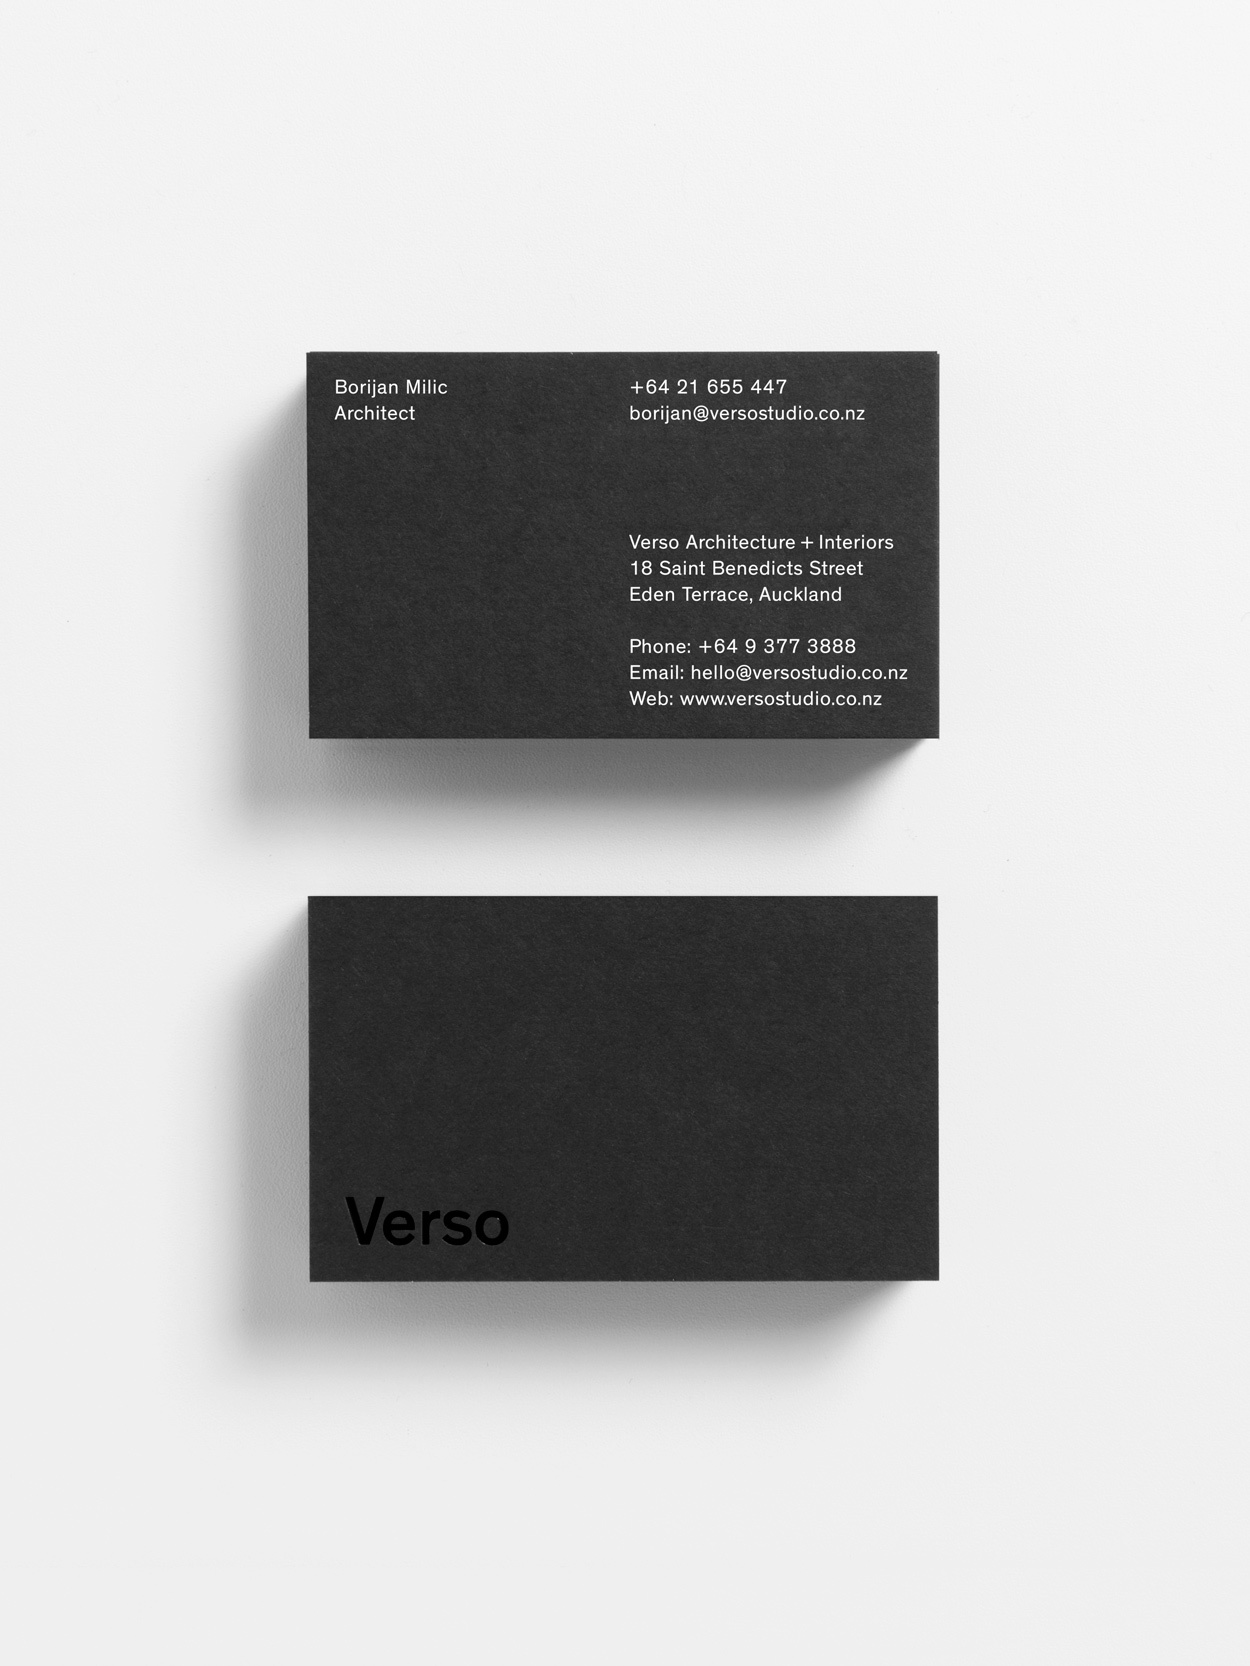 The Best Creative Business Cards 2017 – Verso Architecture+Interiors by Studio South, New Zealand